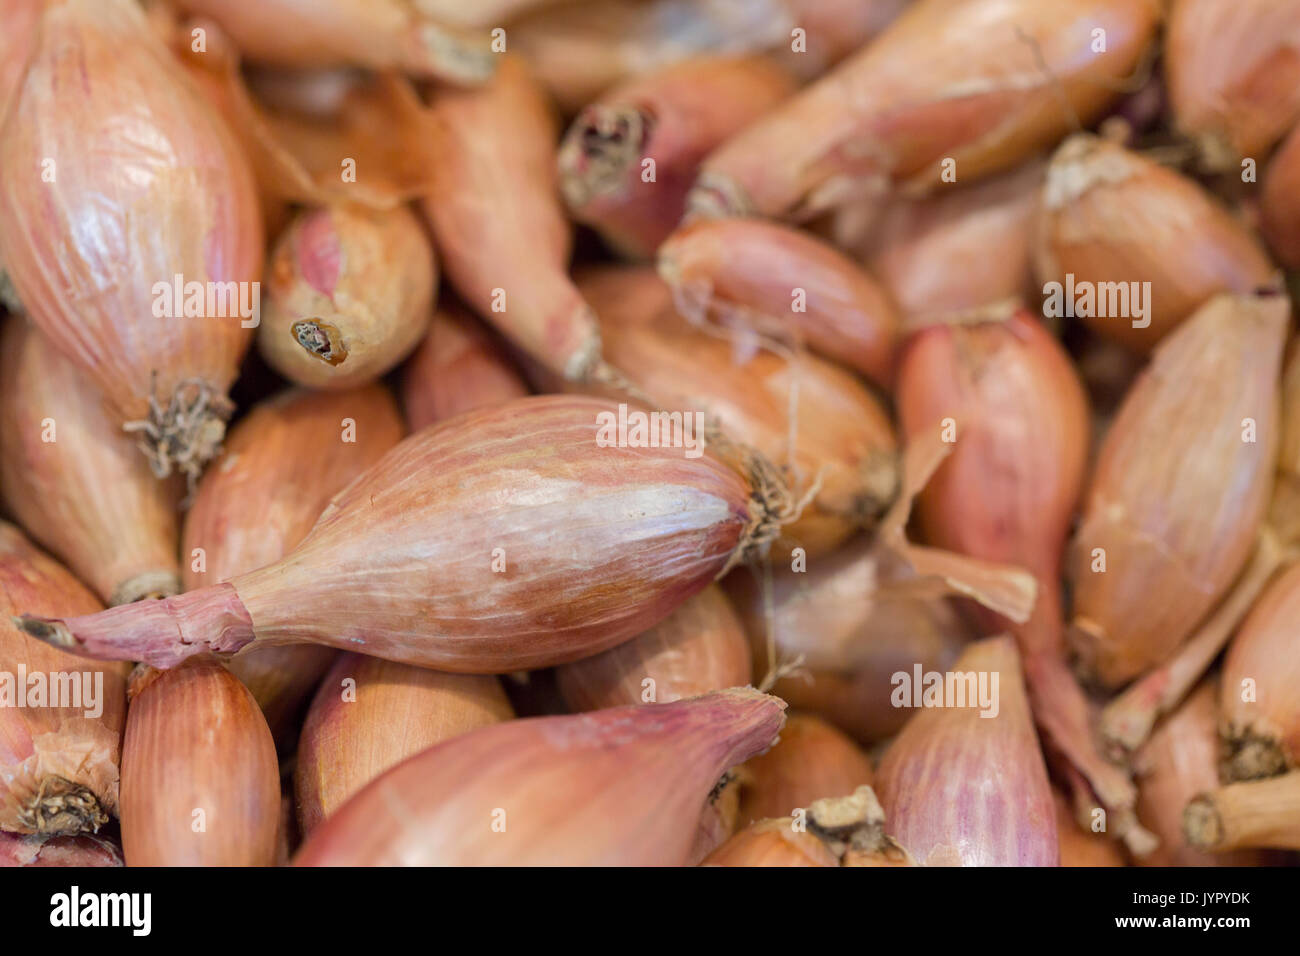 Lots of shallot on a market stall. Seen in Macro. - Stock Image